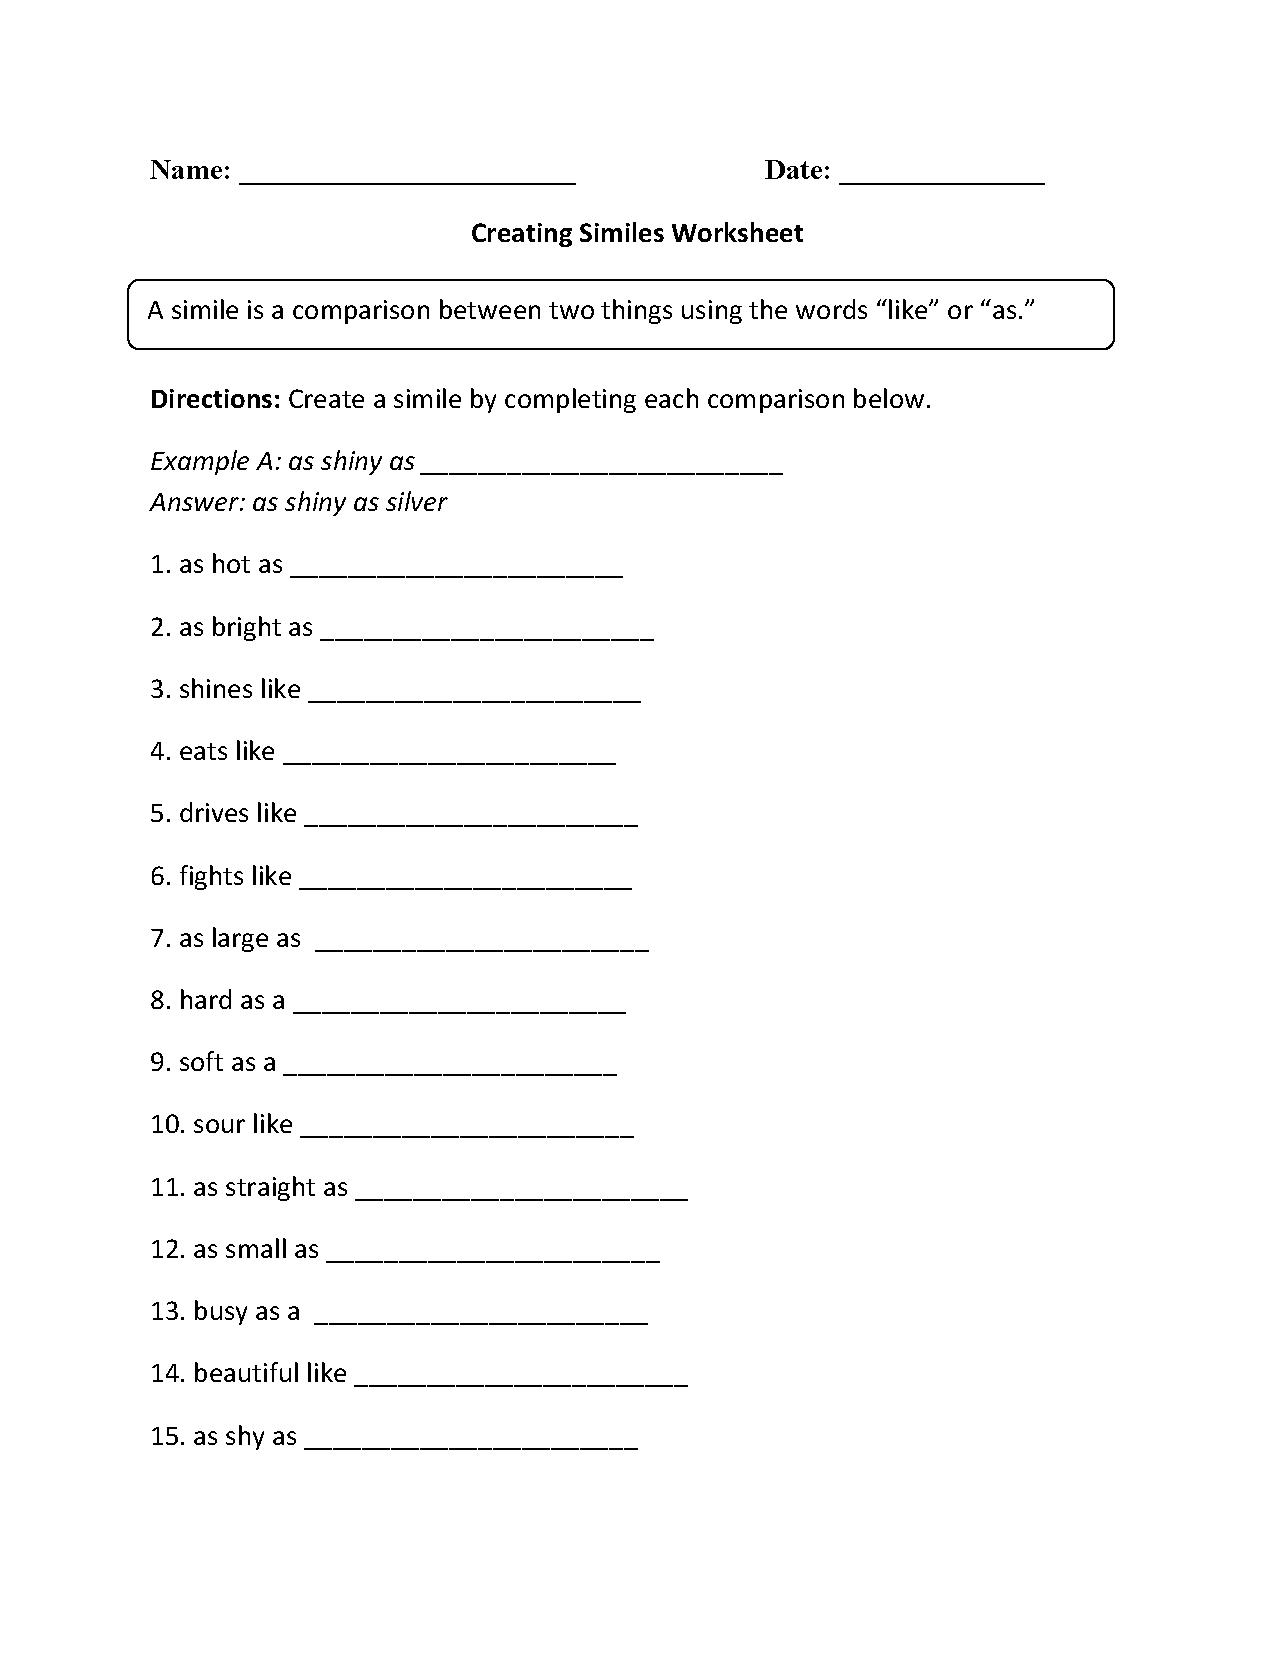 Creating Similes Worksheet